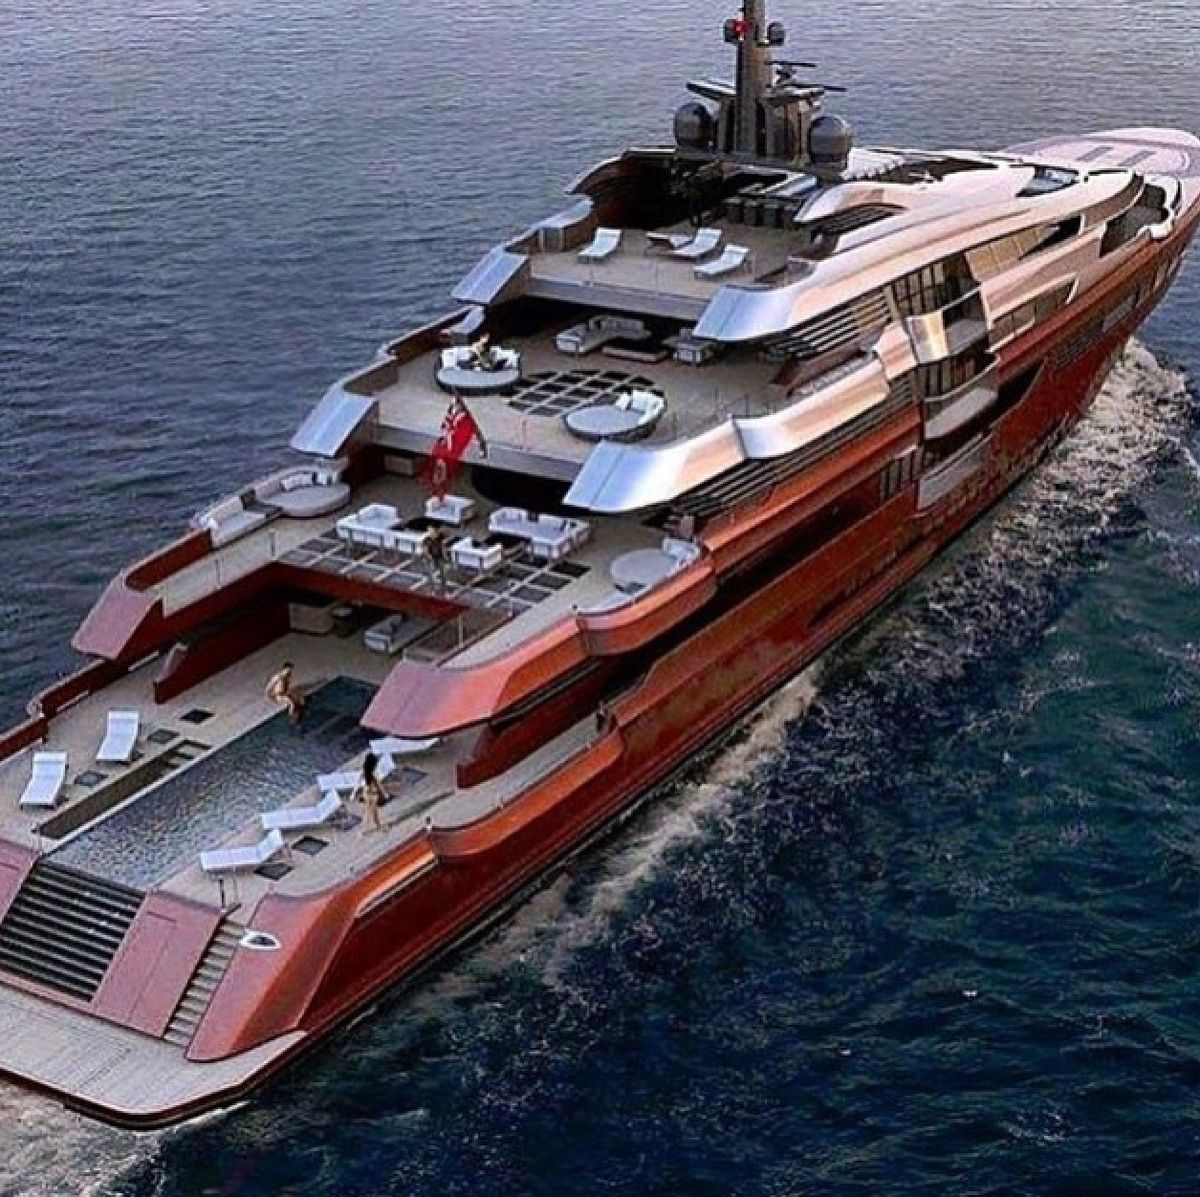 luxury yachts for sale 15 best photos d7f33c7dc715ca7a6f879c466ffe0108